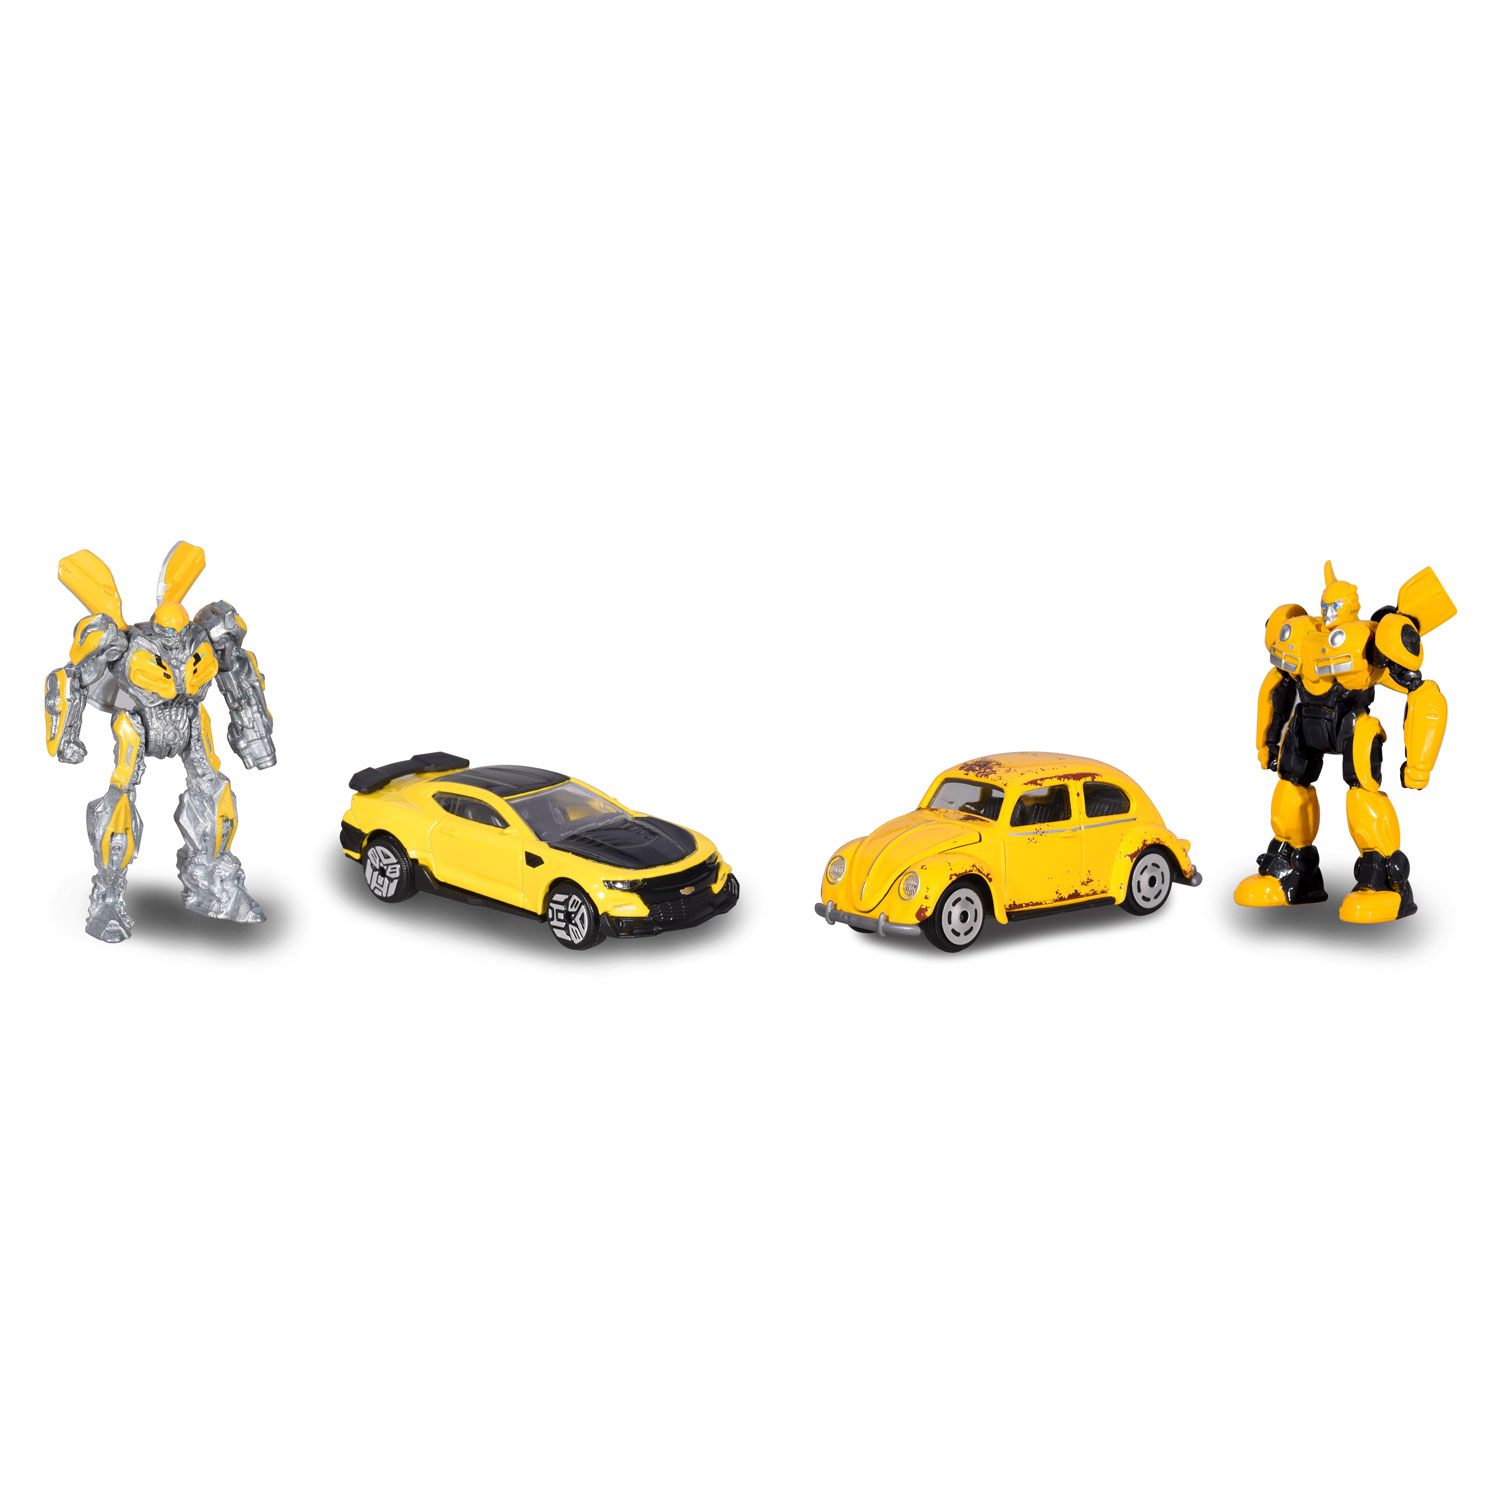 Transformers Bumblebee Set, 4dlg.